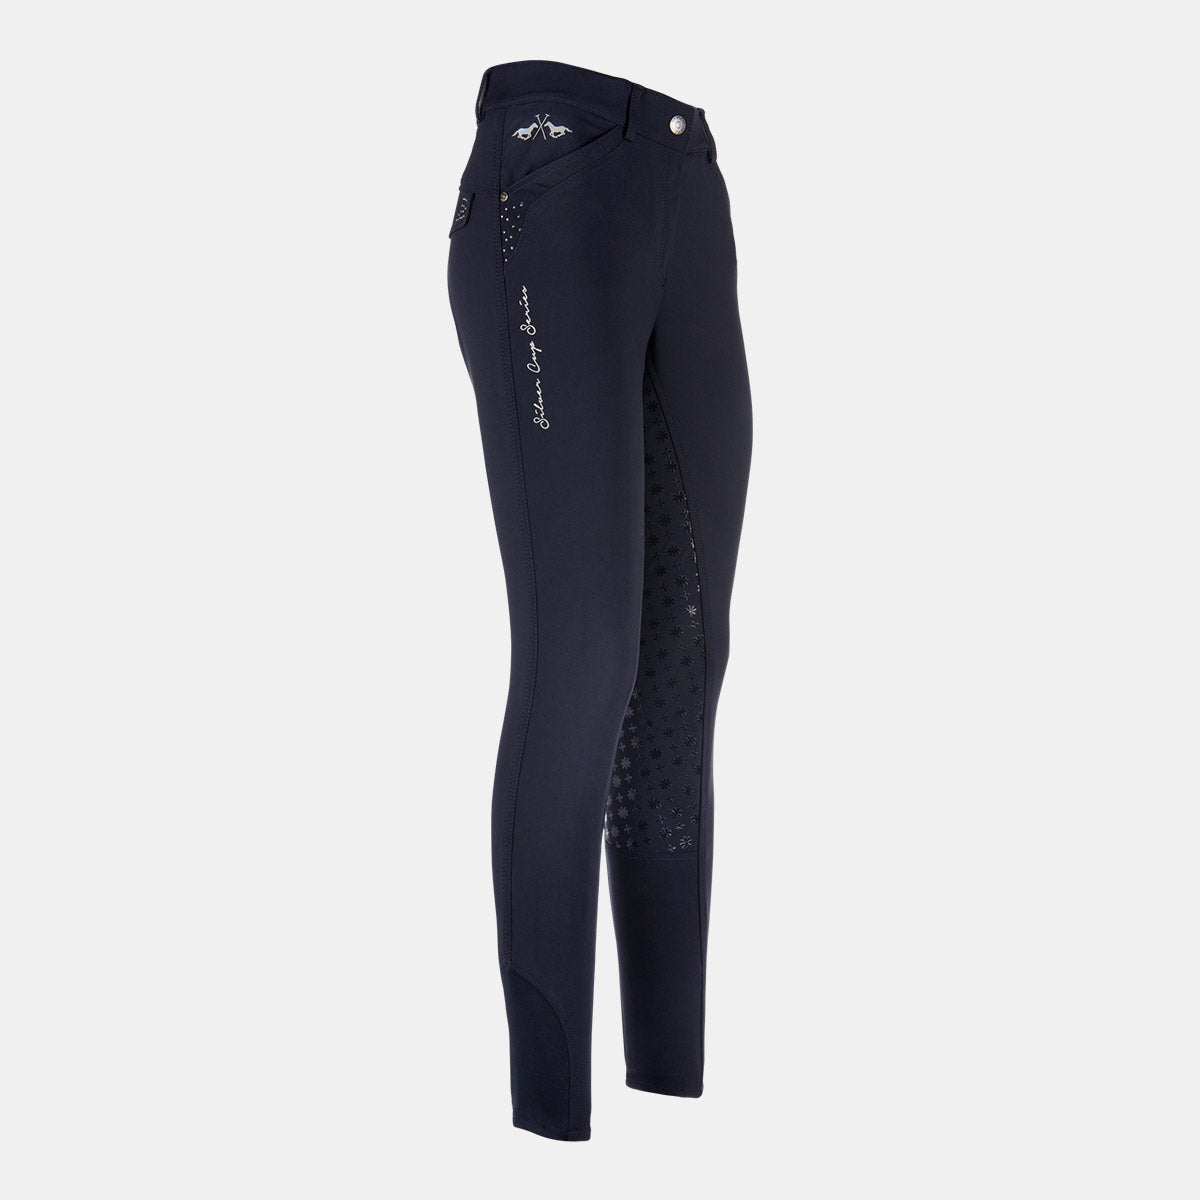 HV Polo Lucilla Breeches in Navy